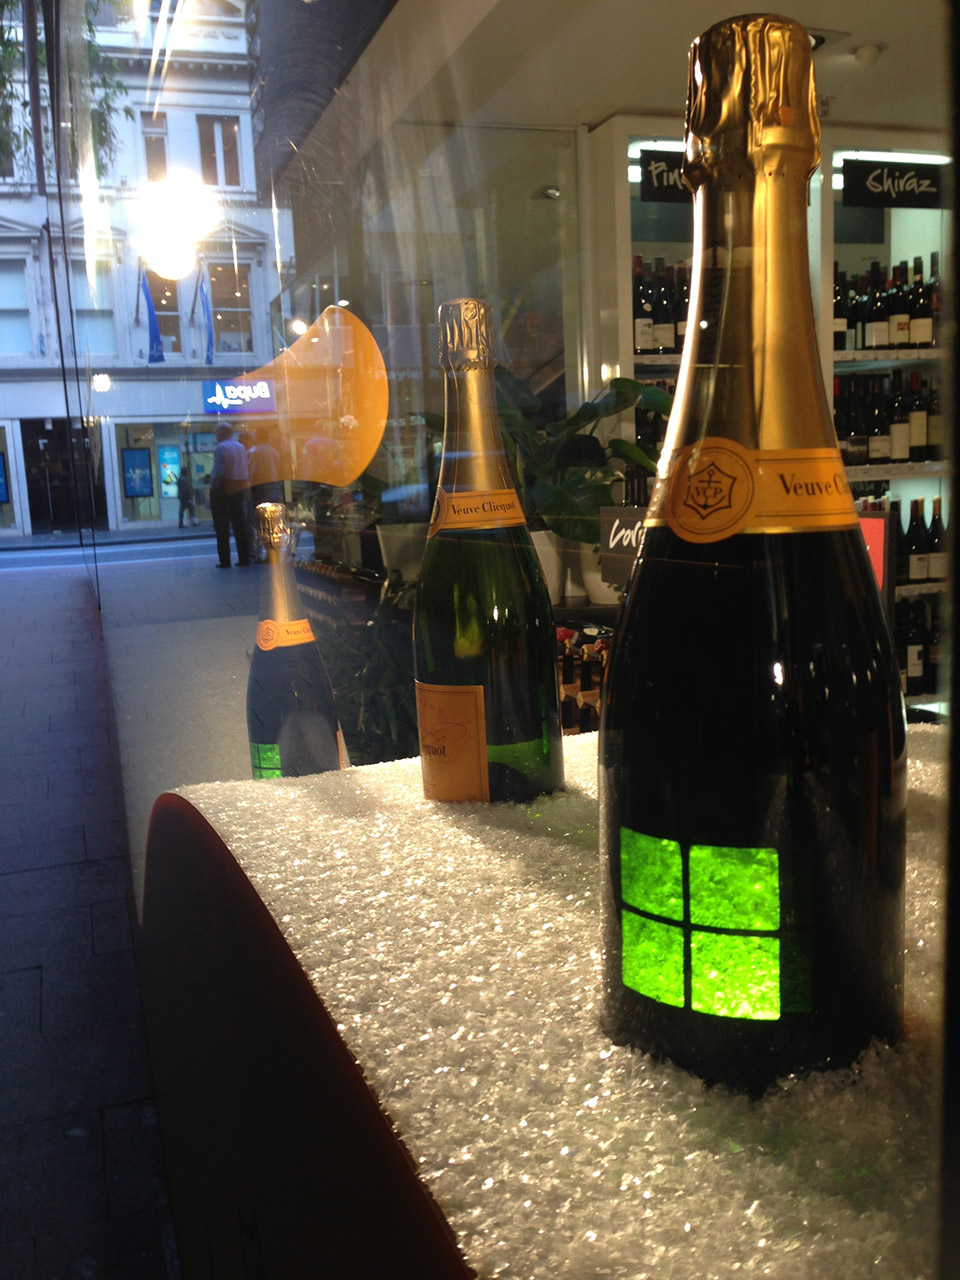 Illuminated Veuve Clicquot Bottle chalet- display design by Objet Bart